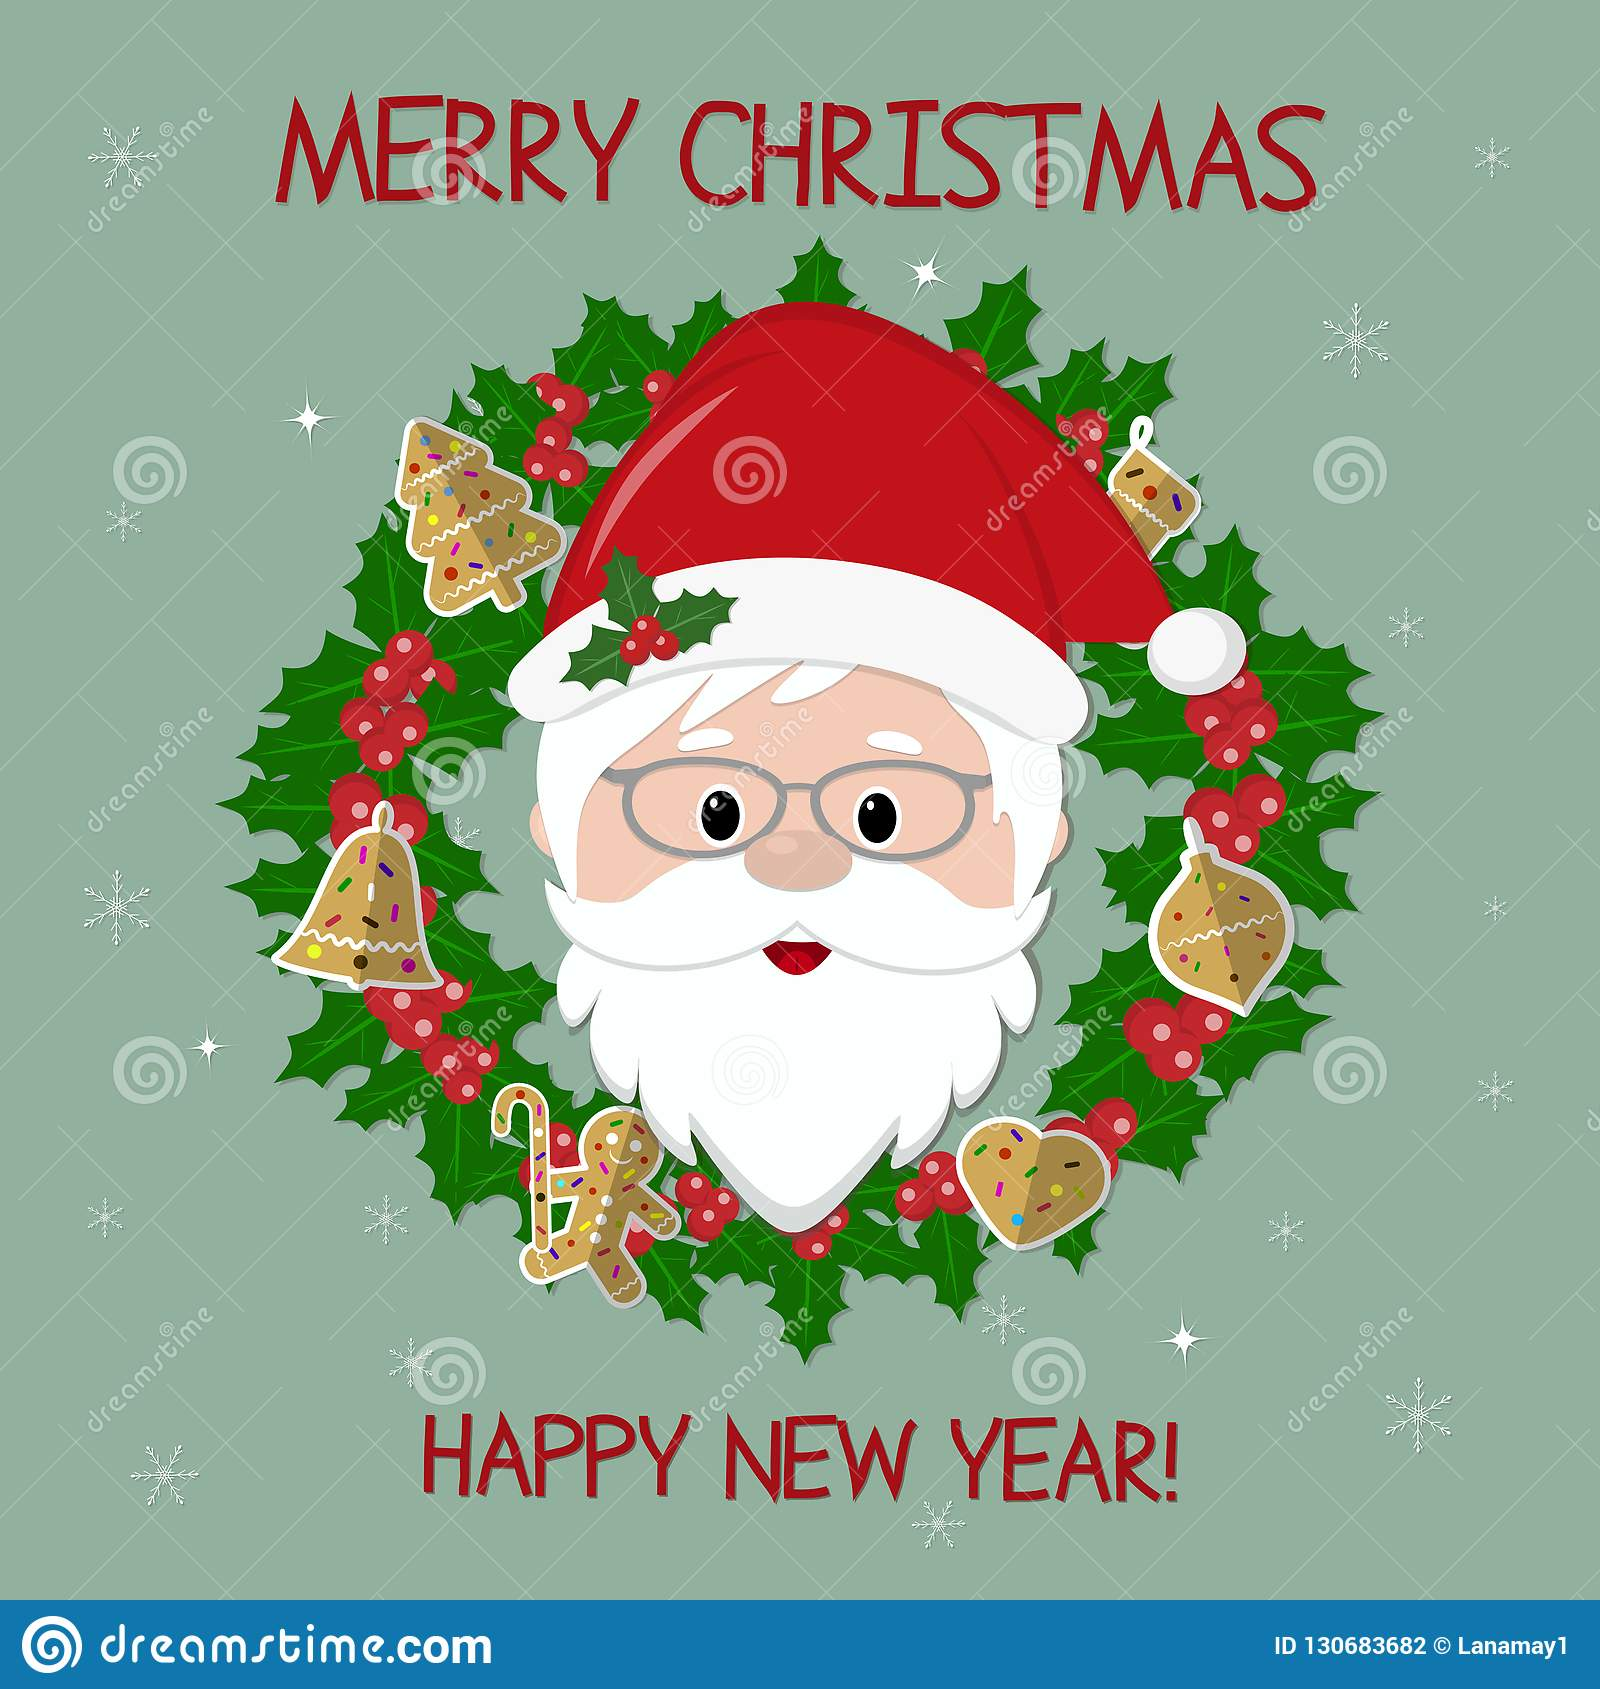 Happy New Year And Merry Christmas Cute Santa Claus And Holly